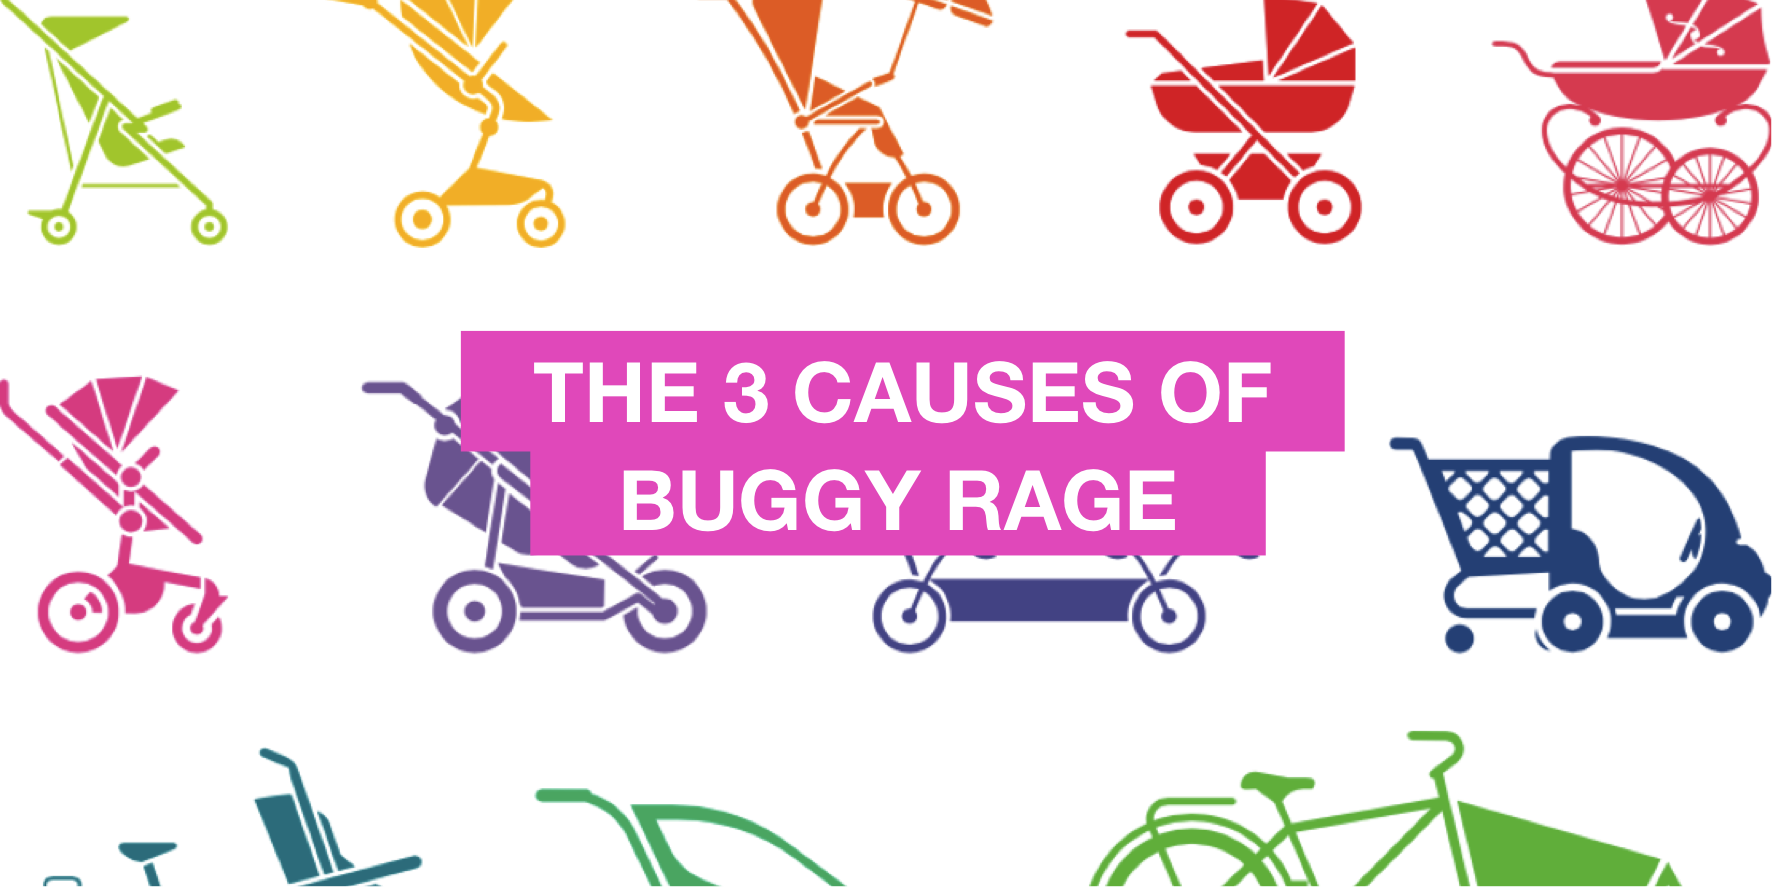 The three causes of buggy rage